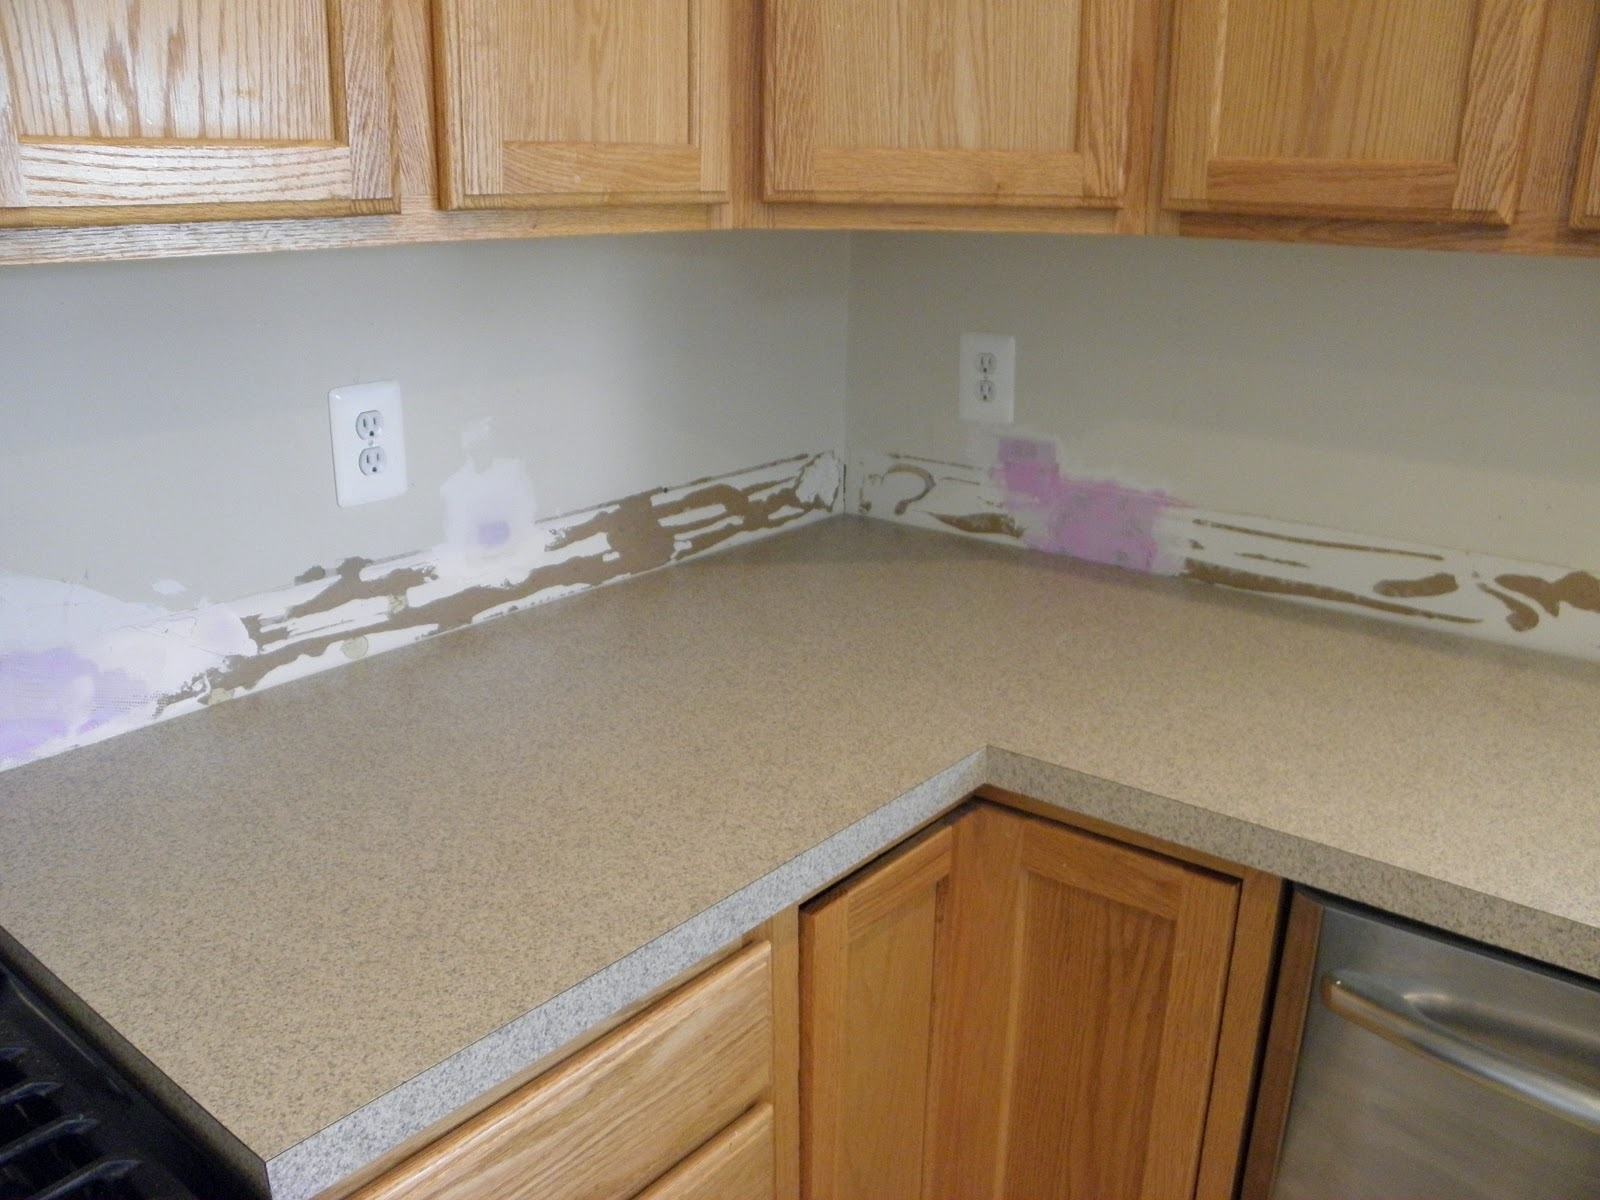 Painting Over Laminate Kitchen Countertops